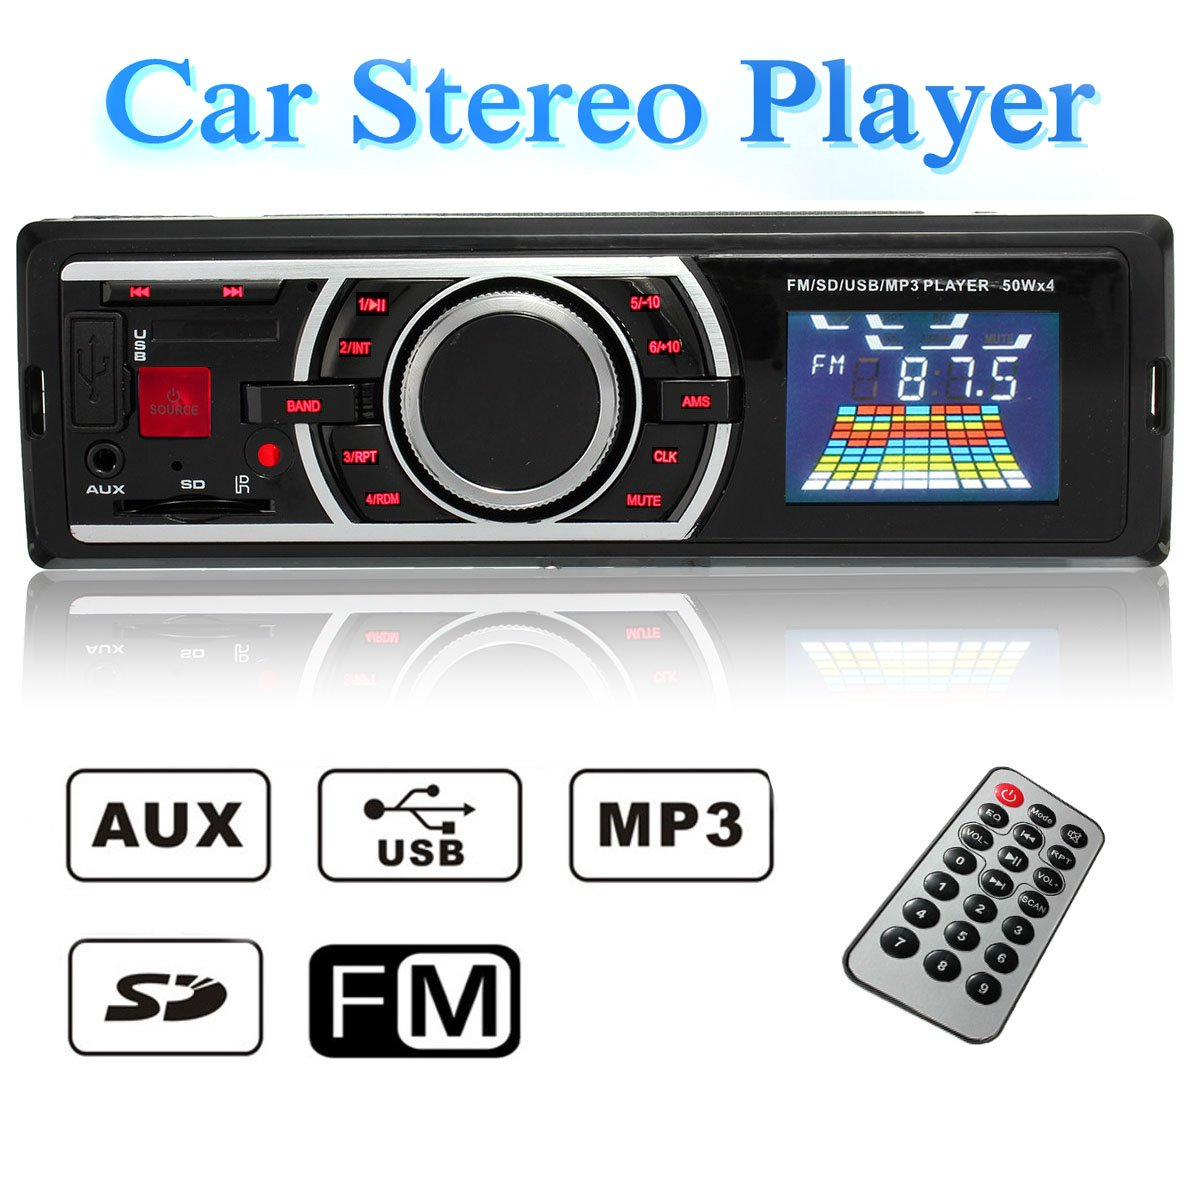 Audew Auto Radio Estereo Coche Audio Reproductor MP Player AUX Input USB